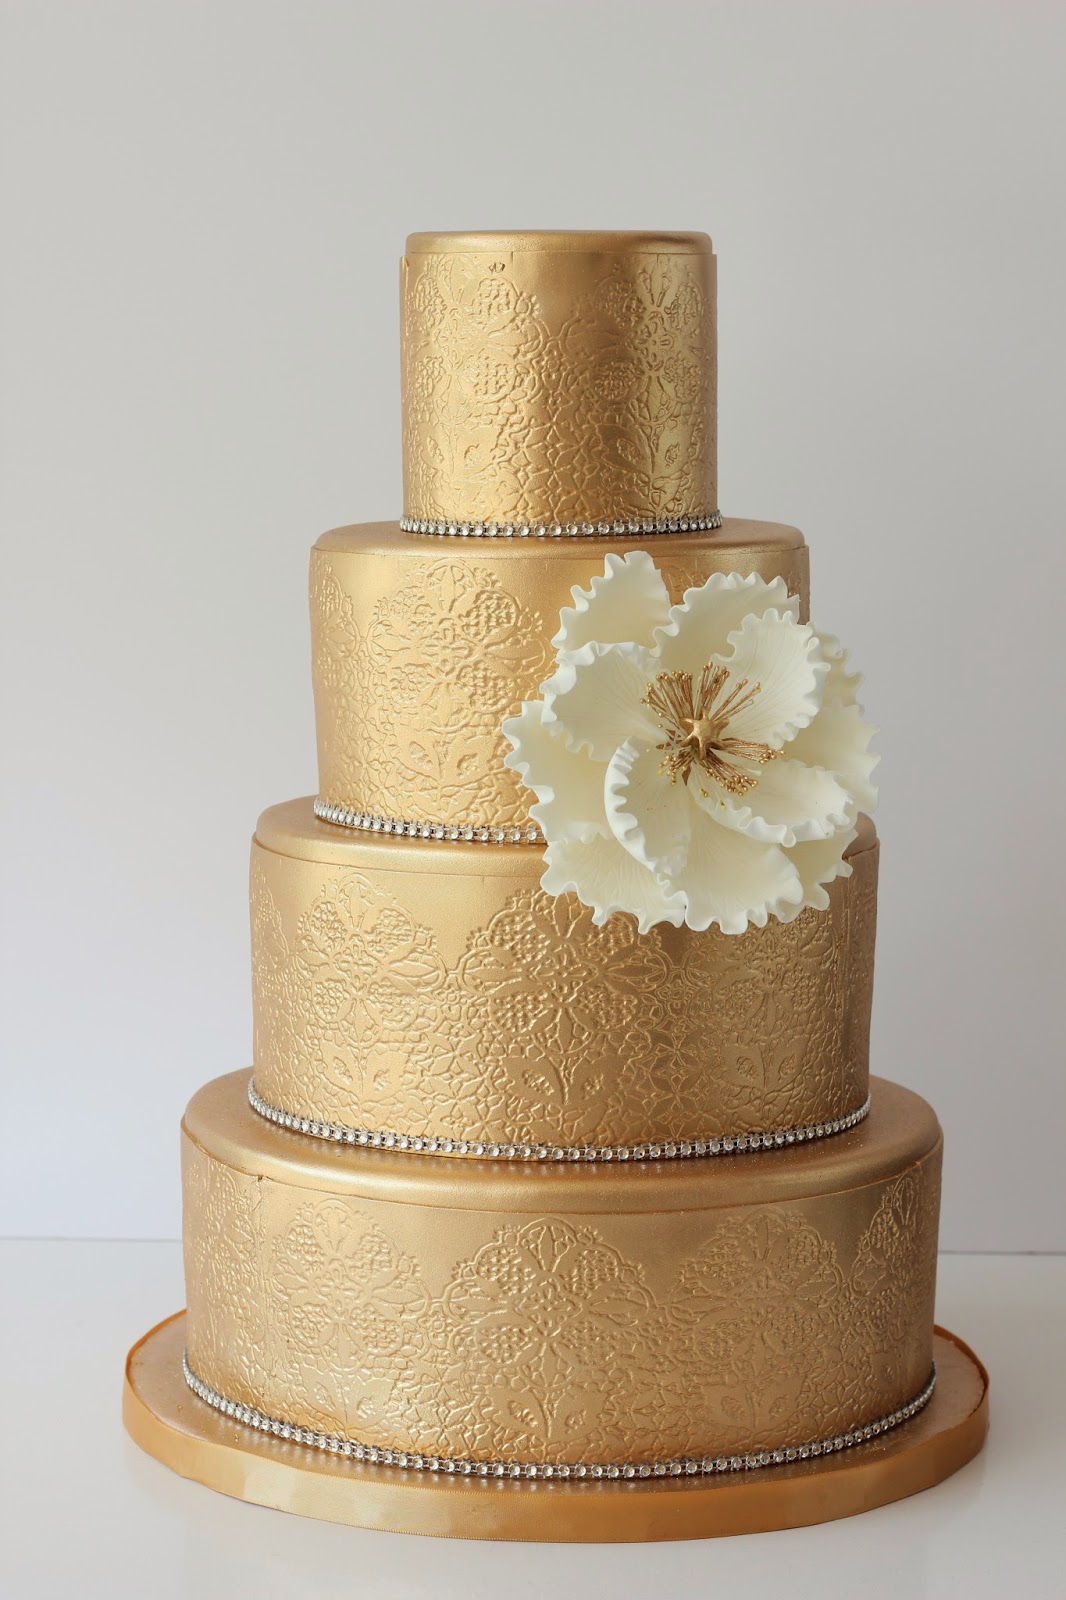 Metallics In 2014 Make Your Wedding Cake Shine Why Not It Stand Out By Adding One Metallic Tier Or Even Making The Entire